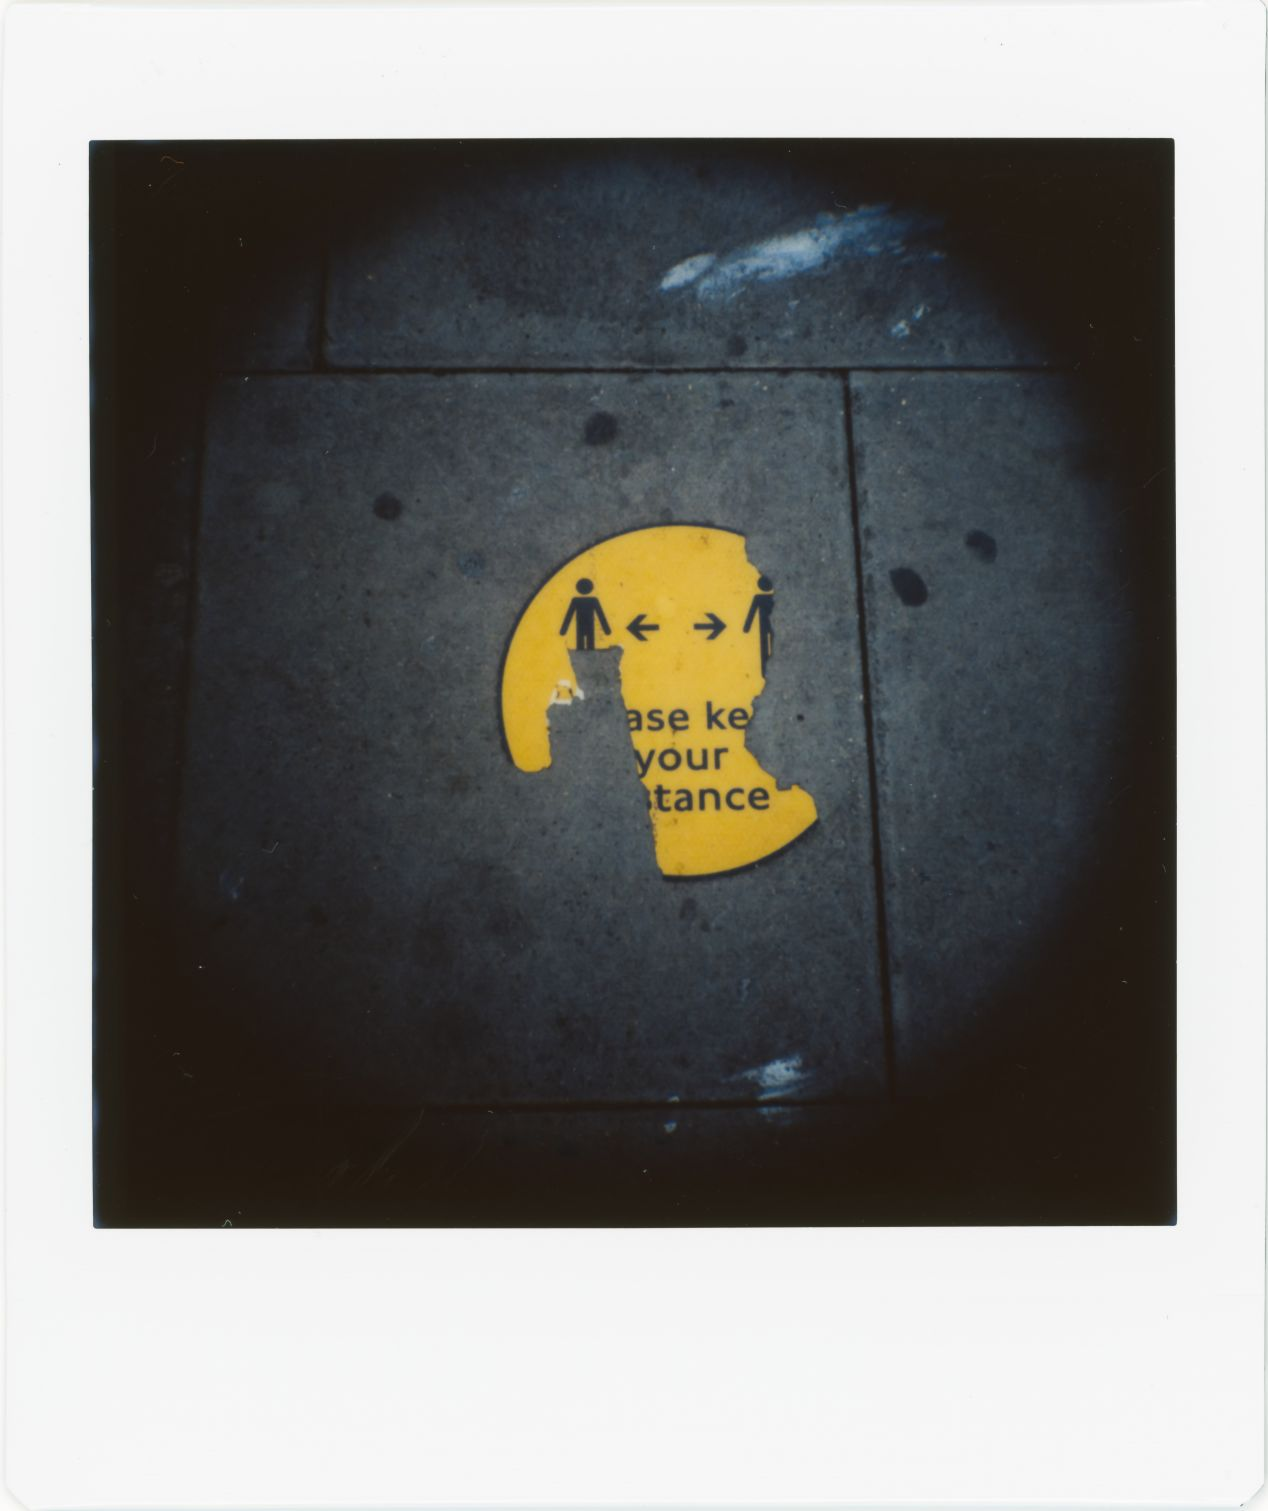 Photograph 7: North London, (no longer required) signage on the pavement exposed to the elements.